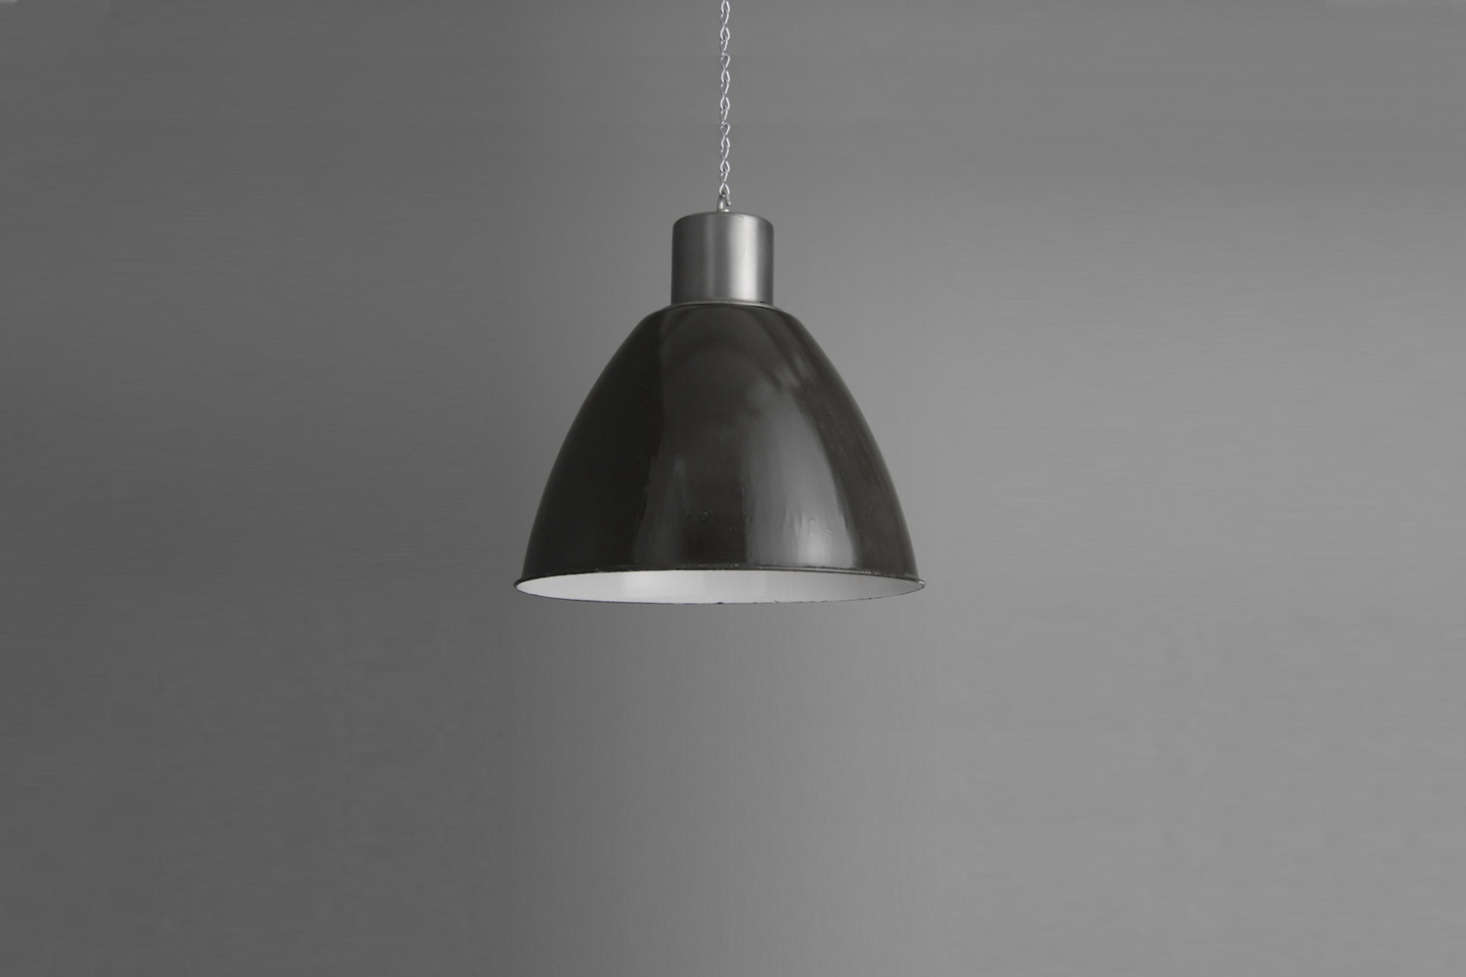 A trio of industrial factory lights over the kitchen island are from vintage industrial lighting dealerSkinflintof Cornwall. Shown here are similar lights from Skinflint, the XL Eastern Bloc Industrial Lights; £540 each.